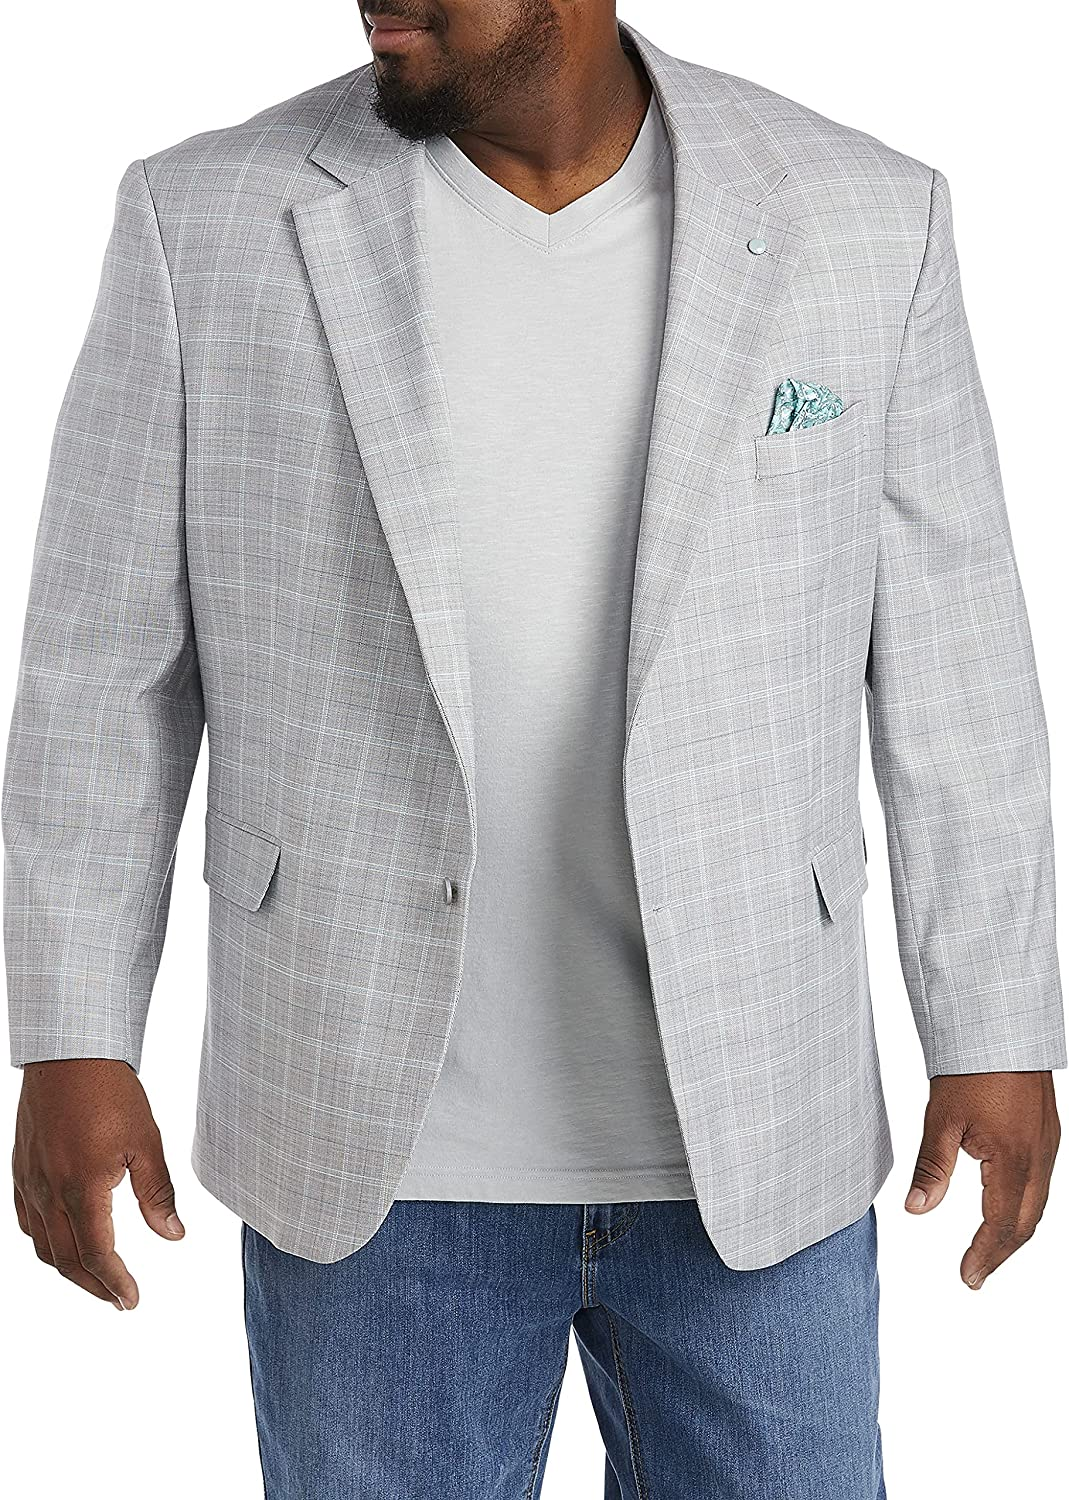 Oak Hill by DXL Big and Tall Jacket Relaxer Textured Deco Sport Coat, Grey